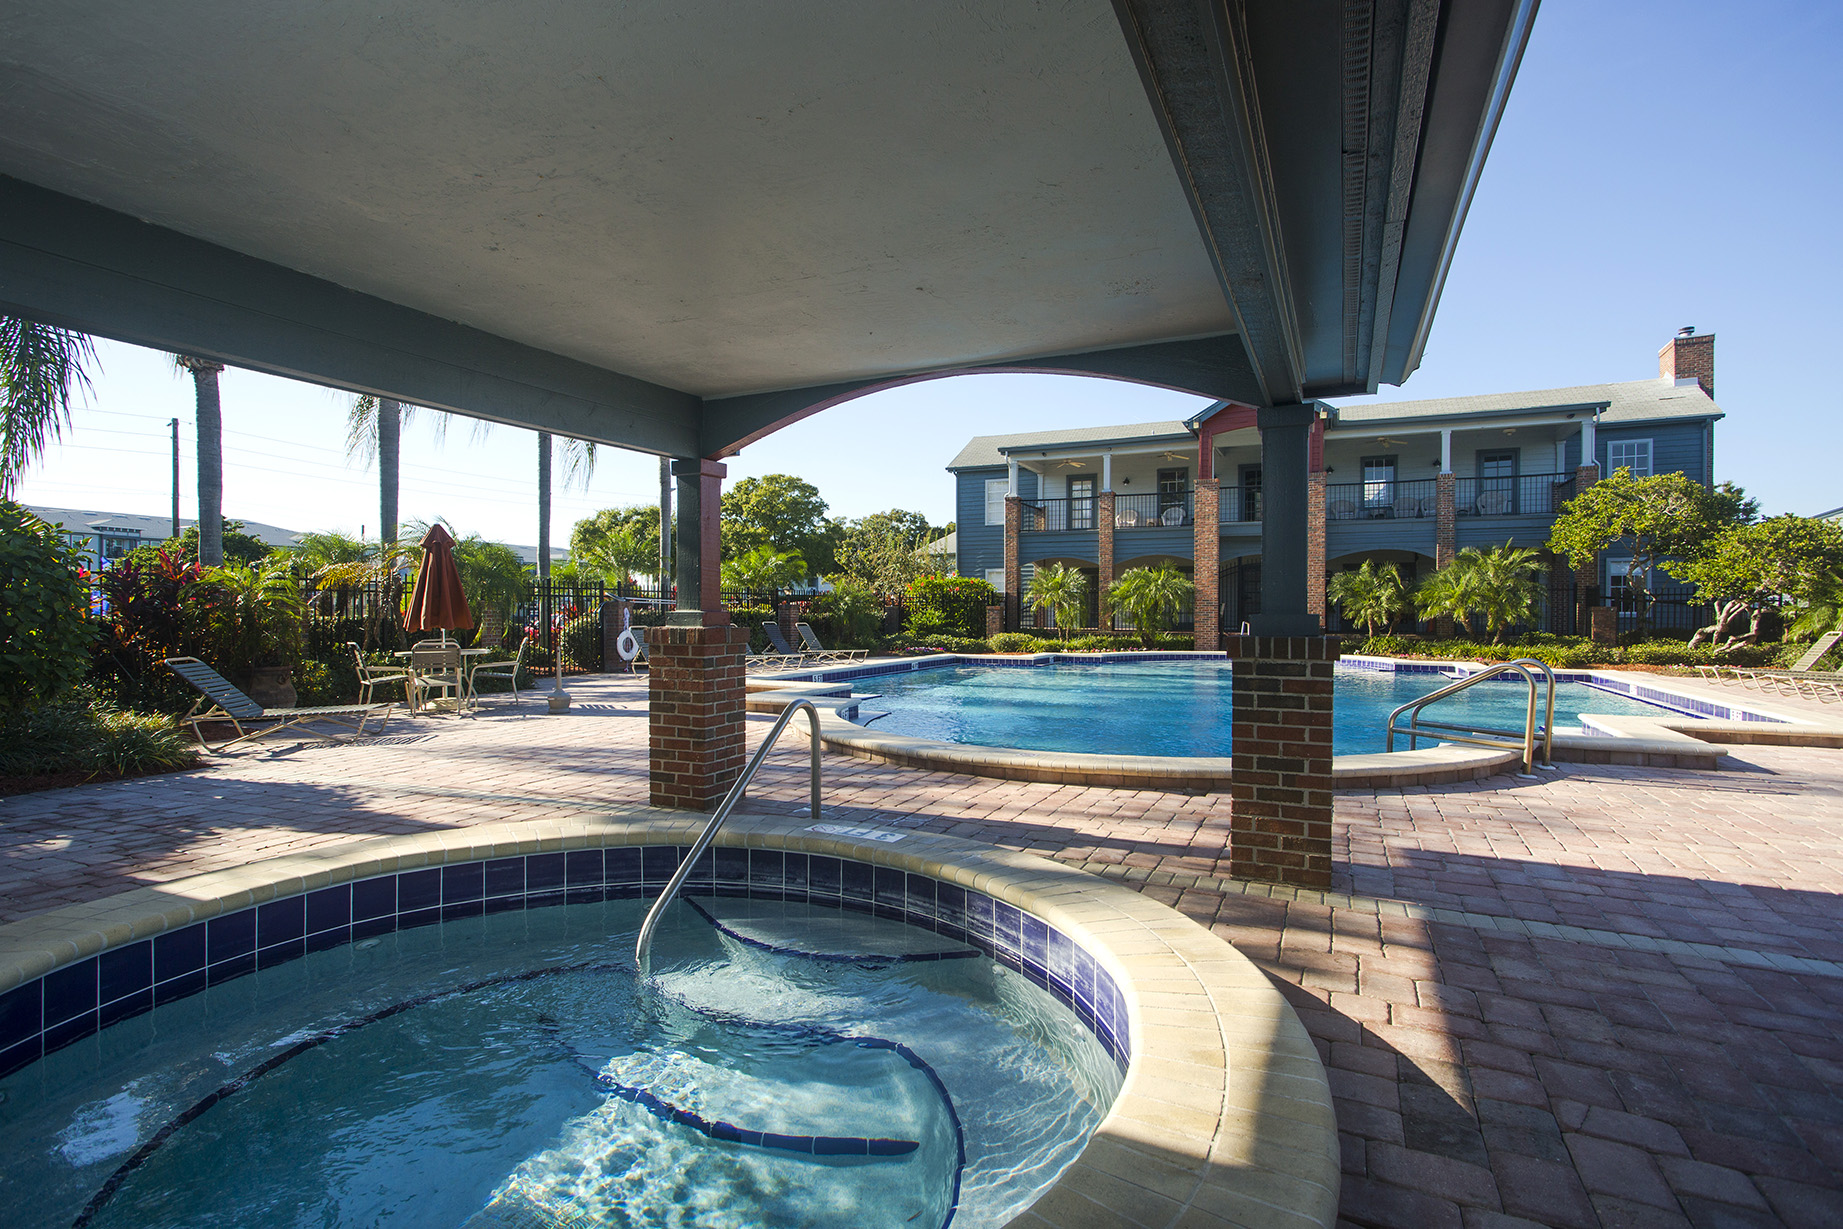 CharlestonLandings-Rental-Apartment-Brandon-Florida-Pool.jpg